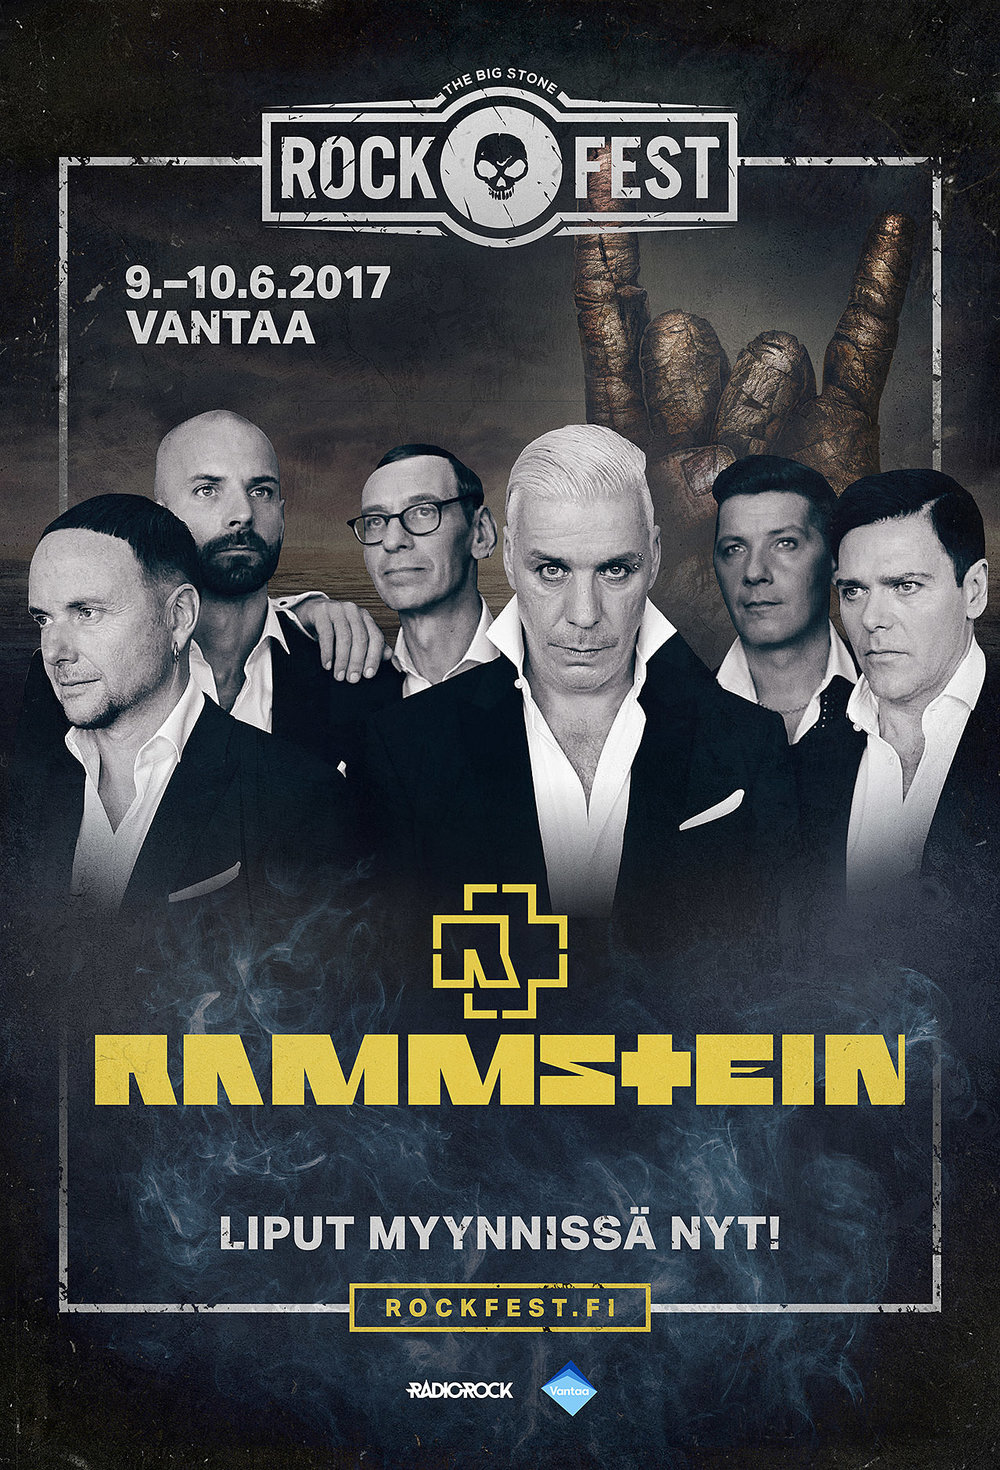 Outdoor campaign, artist poster featuring Rammstein